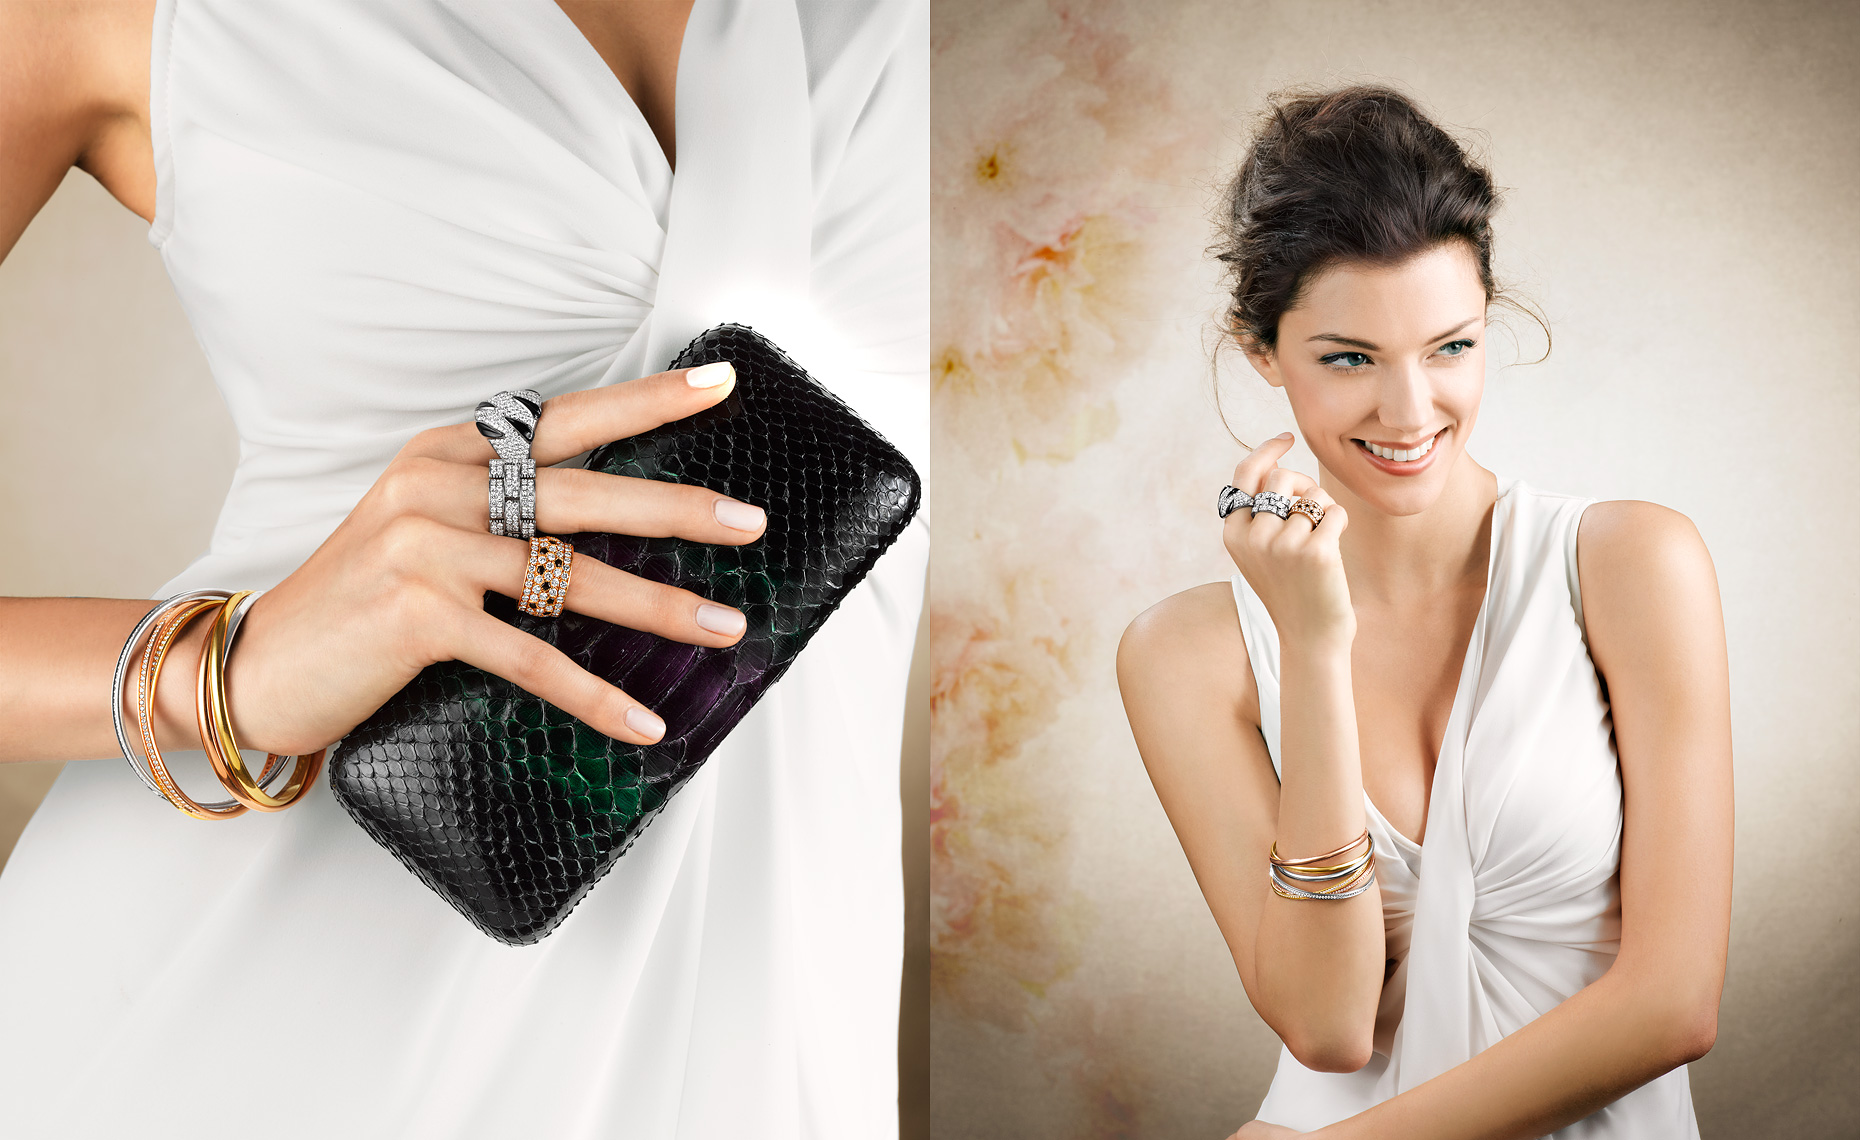 Woman Holding Clutch